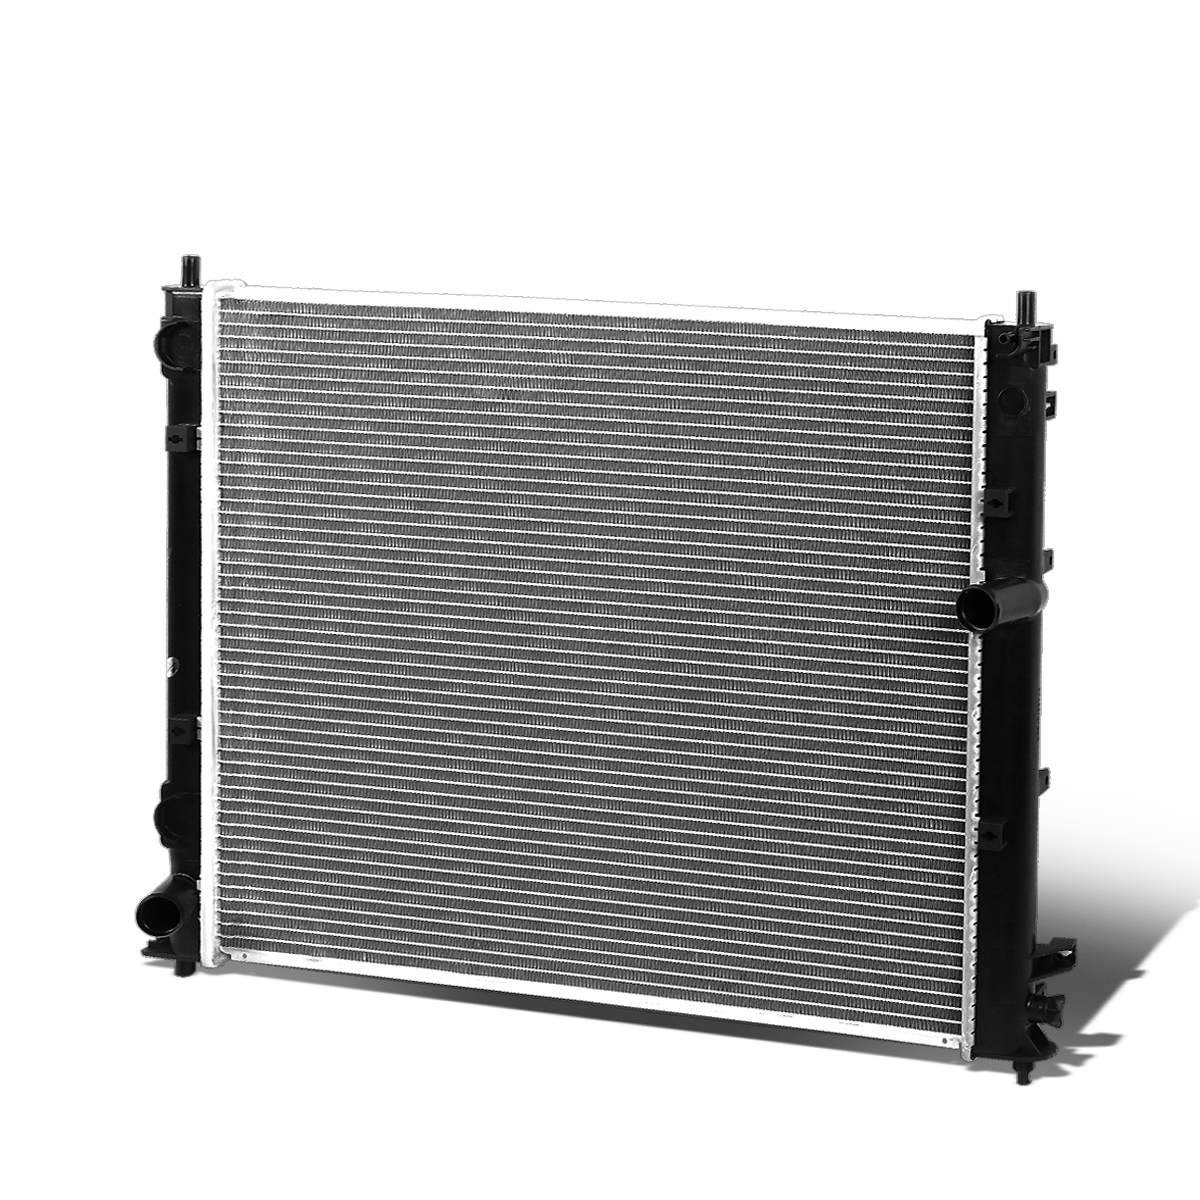 FOR 04-09 CADILLAC STS//SRX AT OE STYLE ALUMINUM CORE COOLING RADIATOR DPI 2733